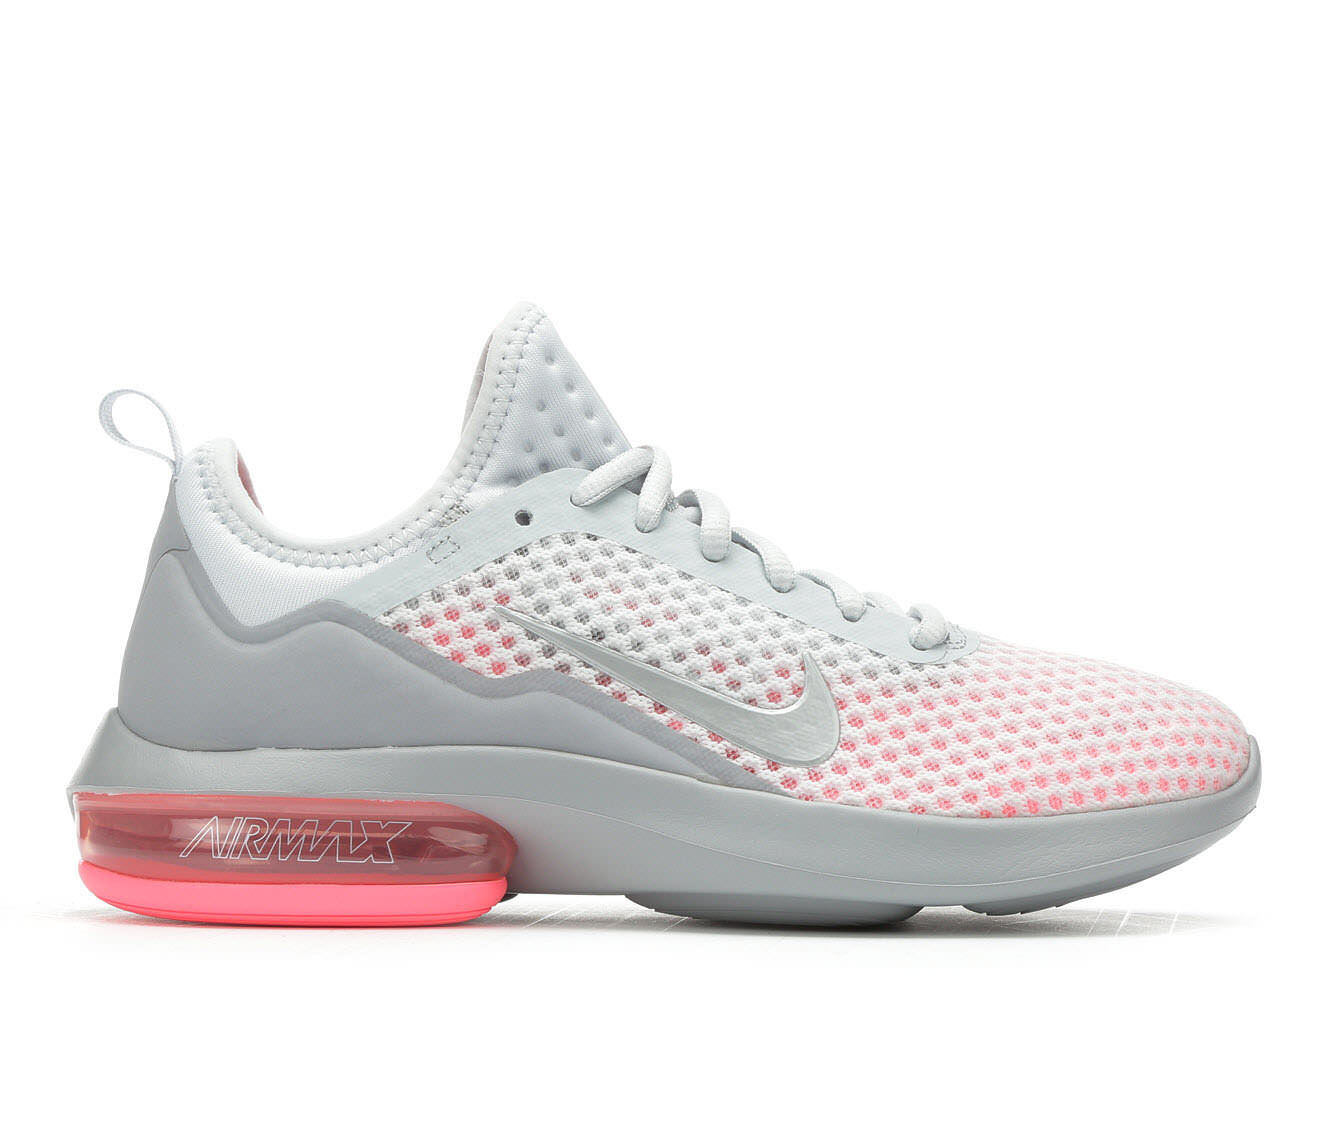 Sneakers Nike Air Max: how to choose and what to wear